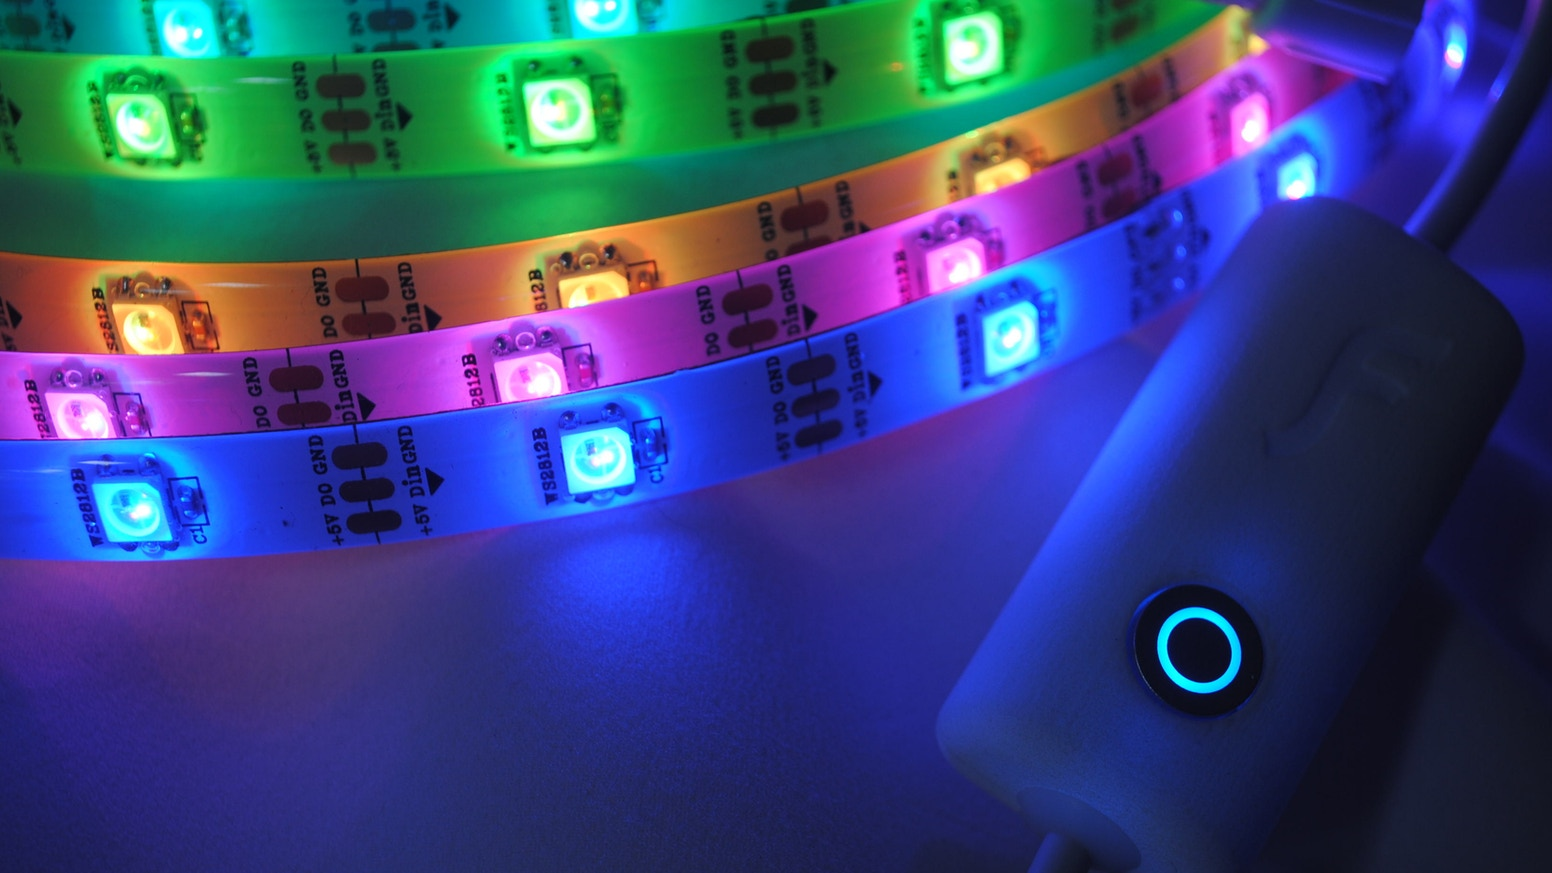 Flickerstrip the customizable home wi fi led light strip by dazzle your friends and guests with a personalized home light show browse popular patterns or aloadofball Images